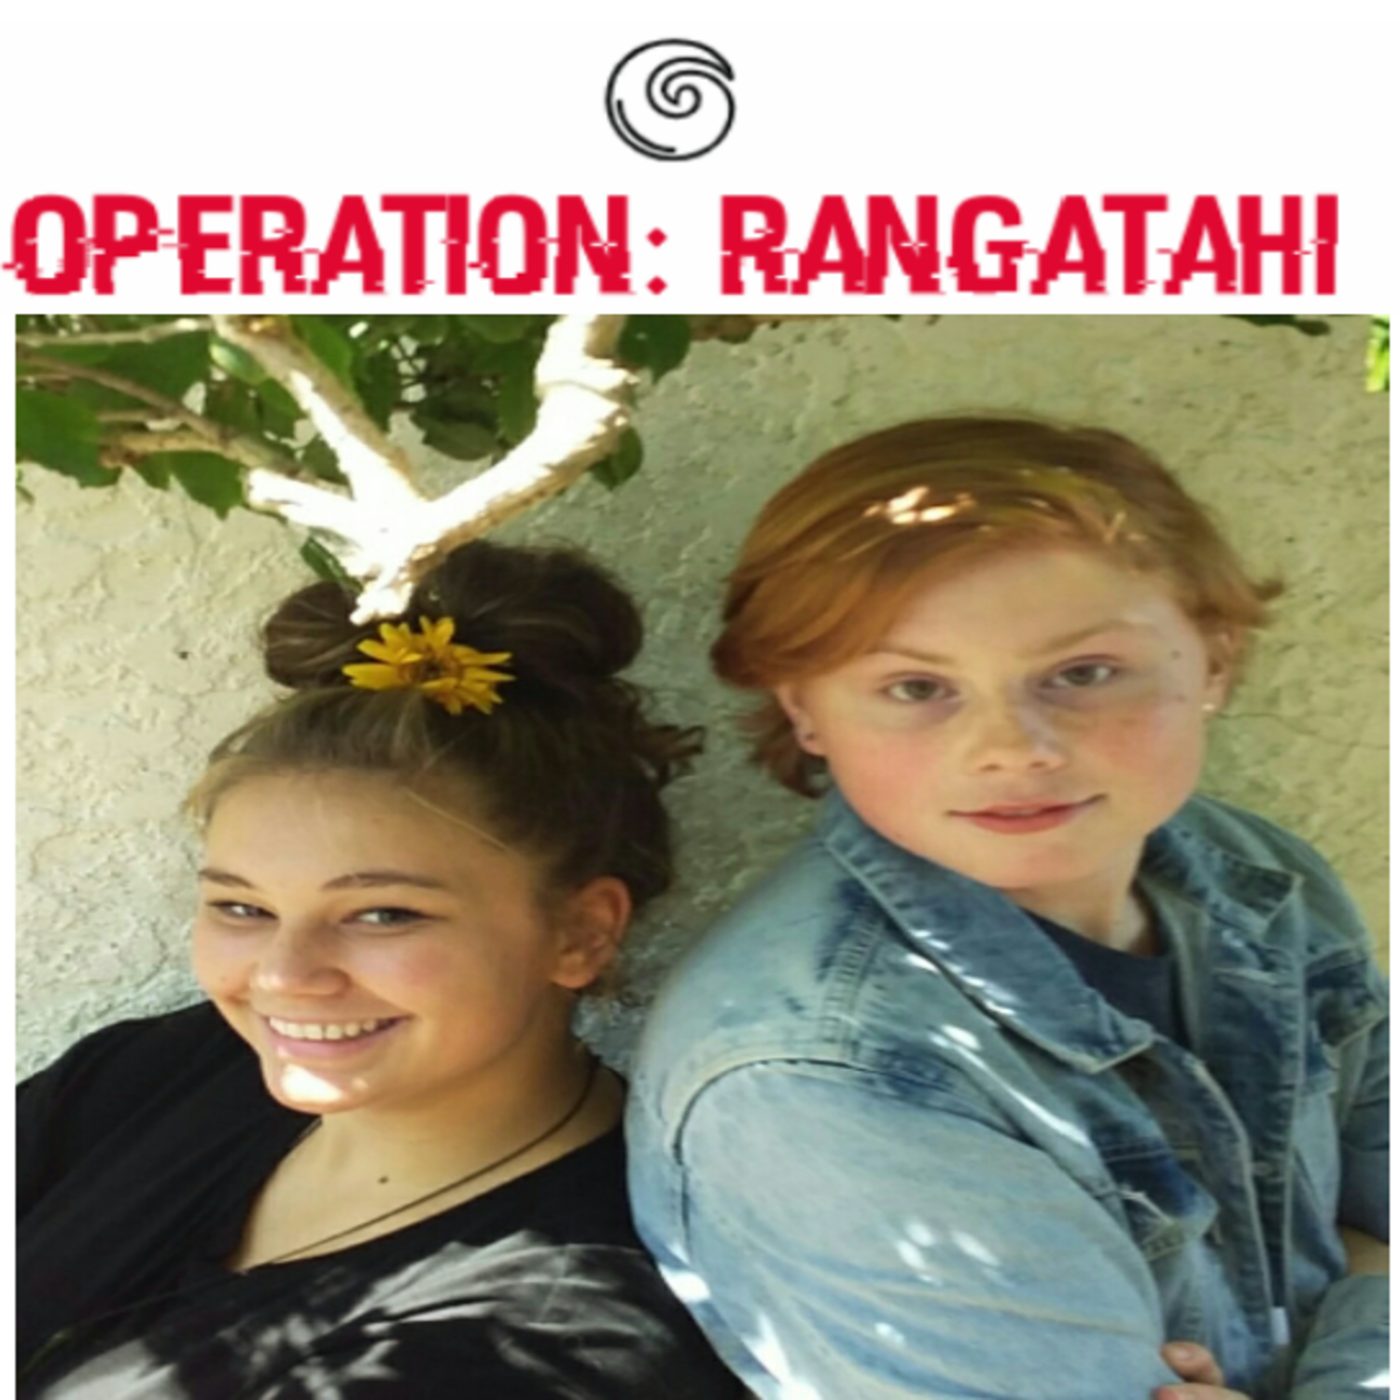 https://cdn.accessradio.org/StationFolder/otago/Images/PCST_OperationRangatahi_v2.png